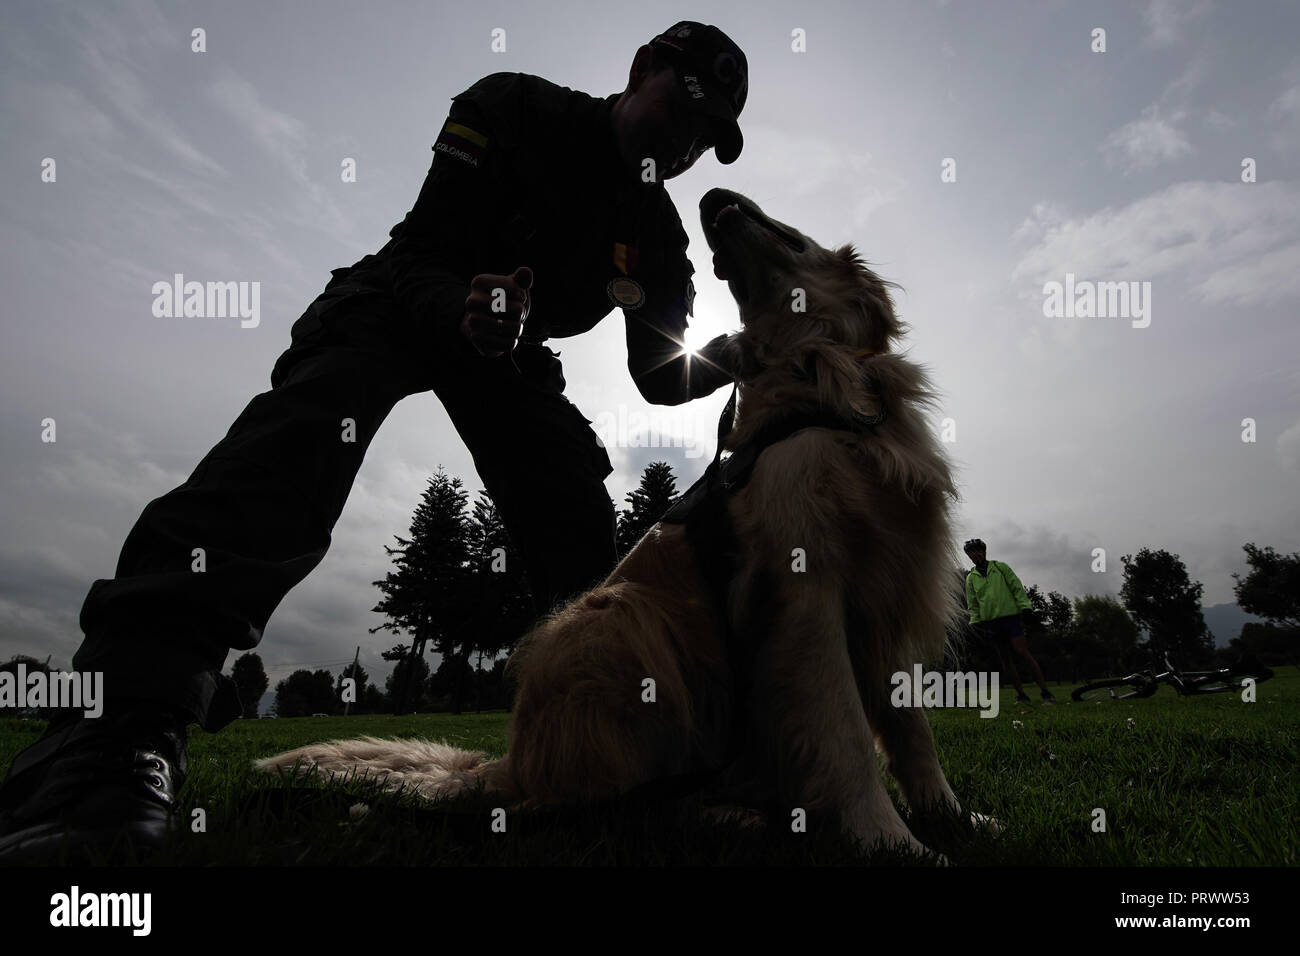 Bogota, Colombia. 4th Oct, 2018. A member of the Colombian Technical Investigation Team (CTI) takes part in a recognition ceremony along with a dog in Bogota, Colombia, on Oct. 4, 2018. A recognition ceremony to highlight and recognize the work of the canines and equines that serve in Bogota was held here to mark the World Animal Day on Thursday. Credit: Jhon Paz/Xinhua/Alamy Live News - Stock Image